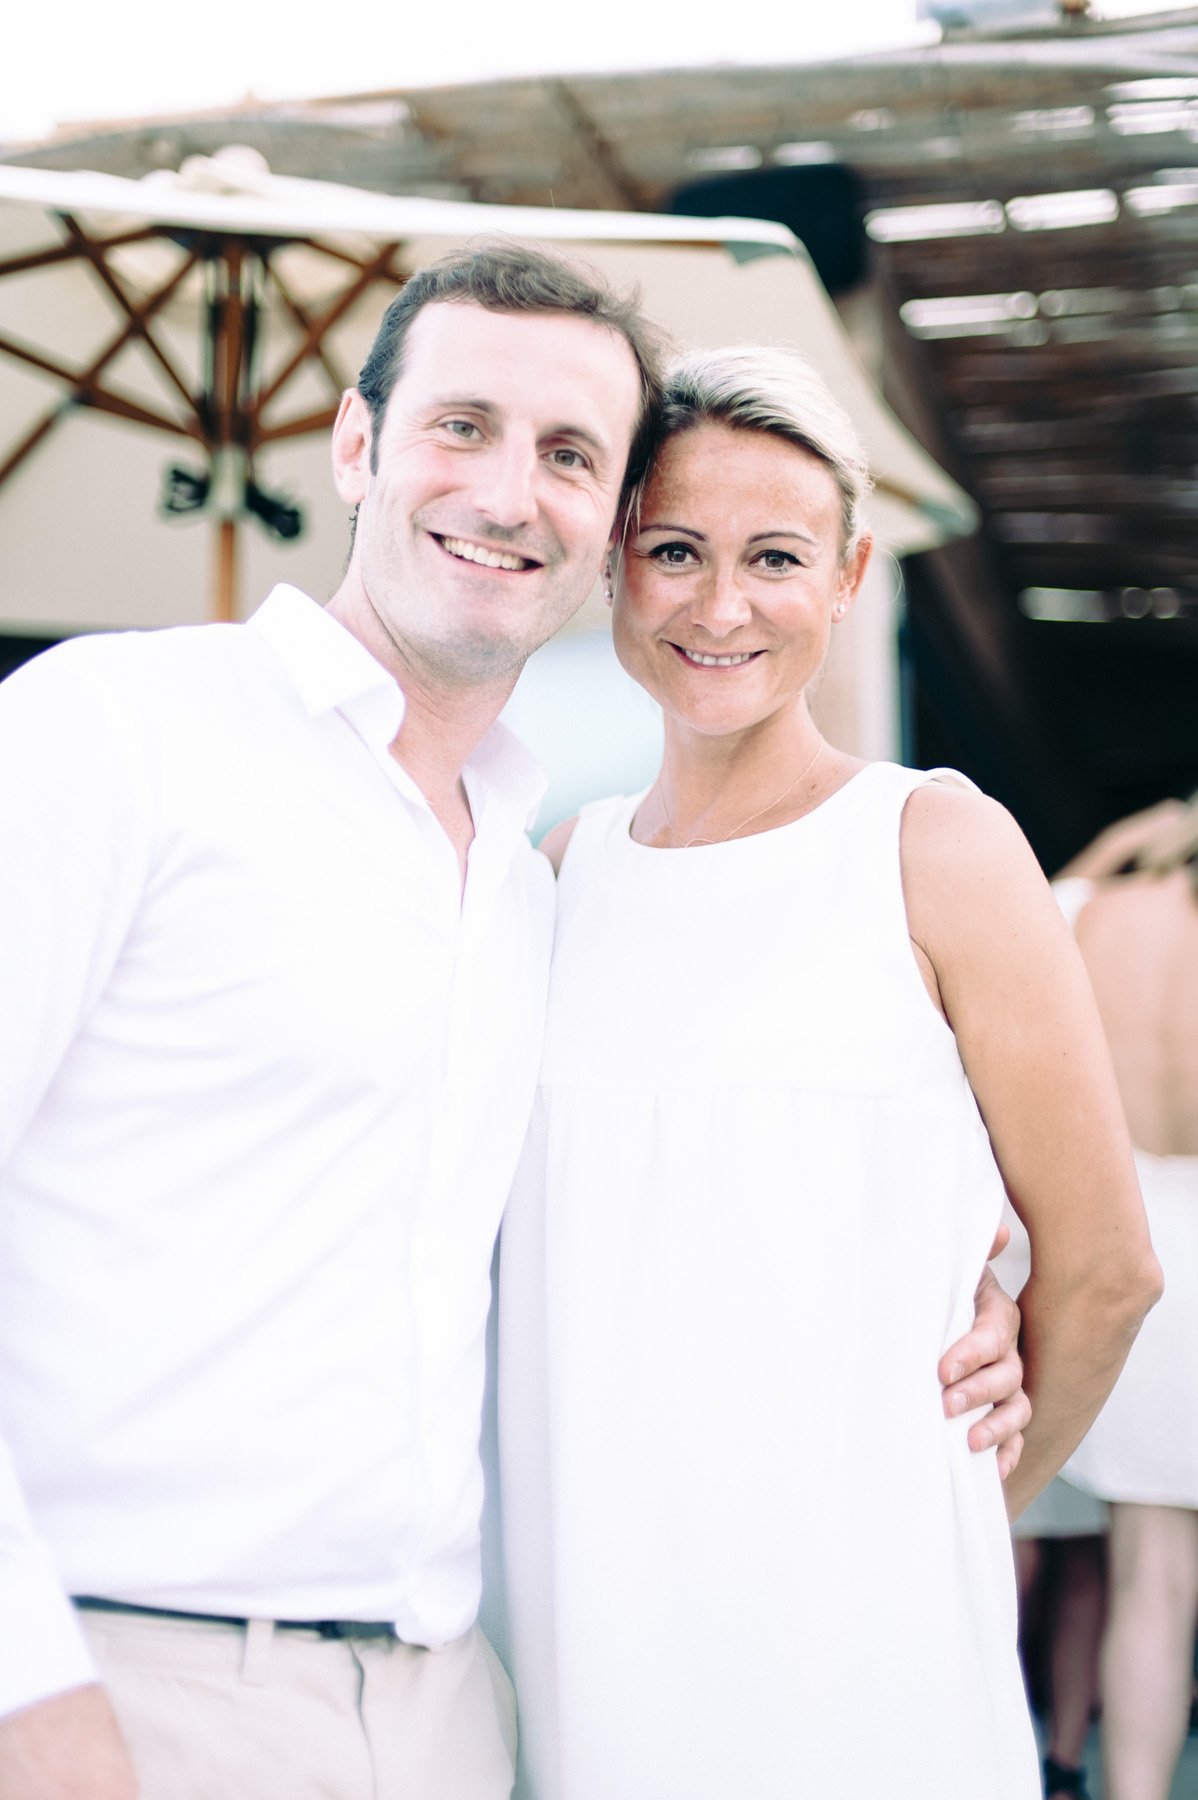 Photographe mariage montpellier corse - Mademoiselle G photographie (238)